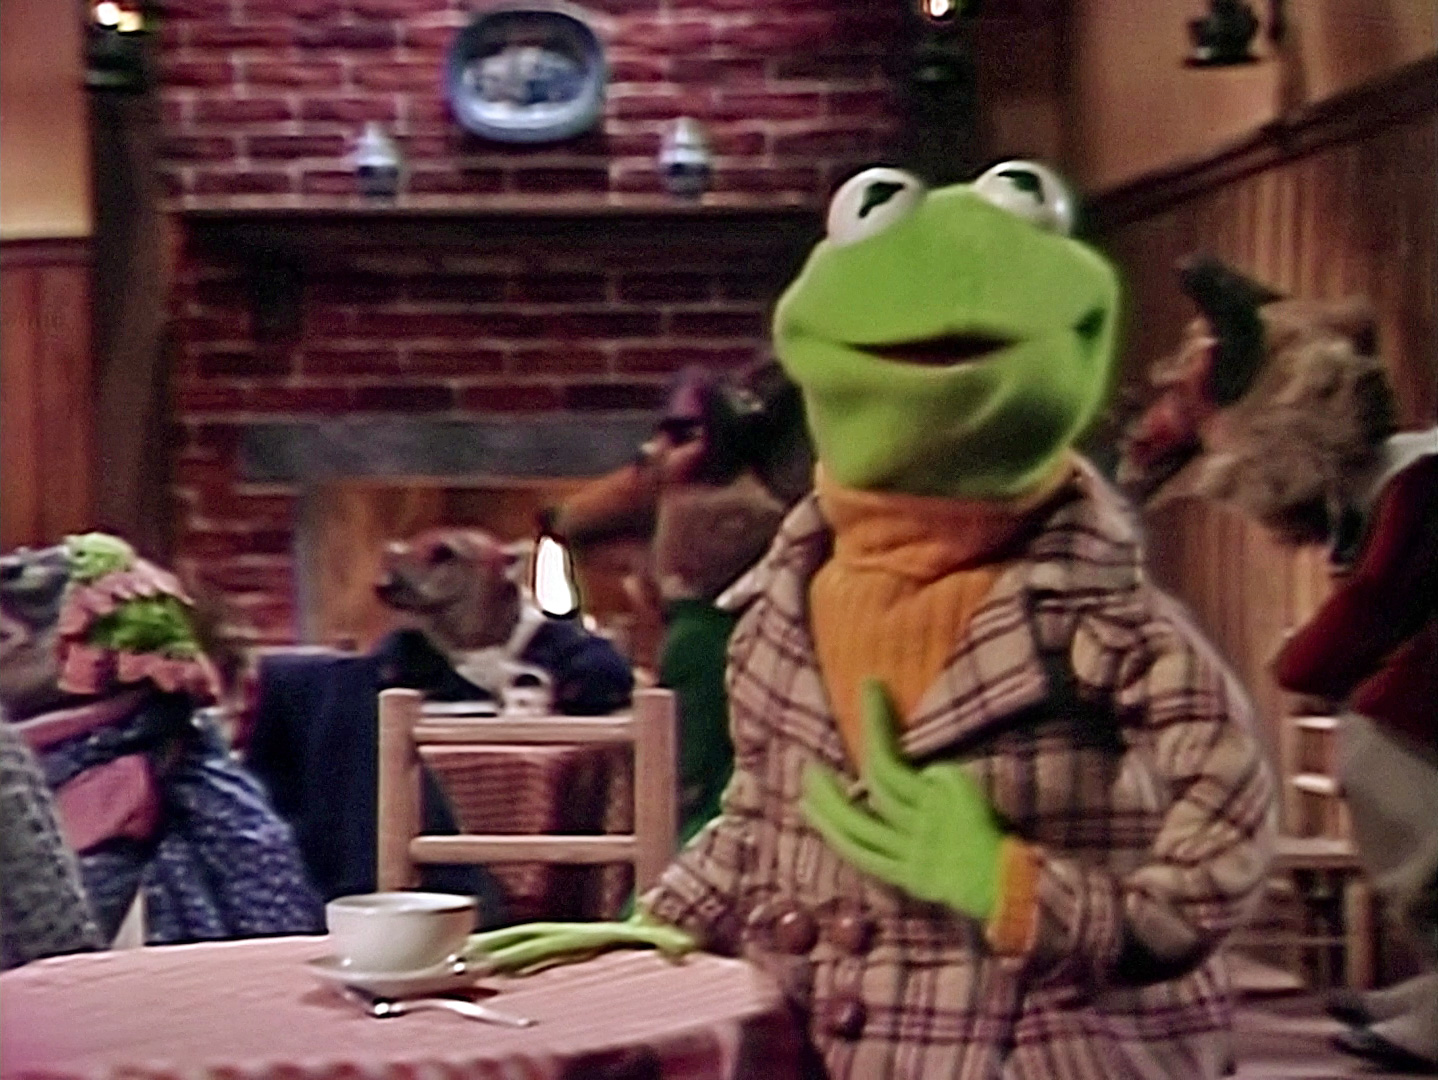 File:Kermit-emmet-end.jpg